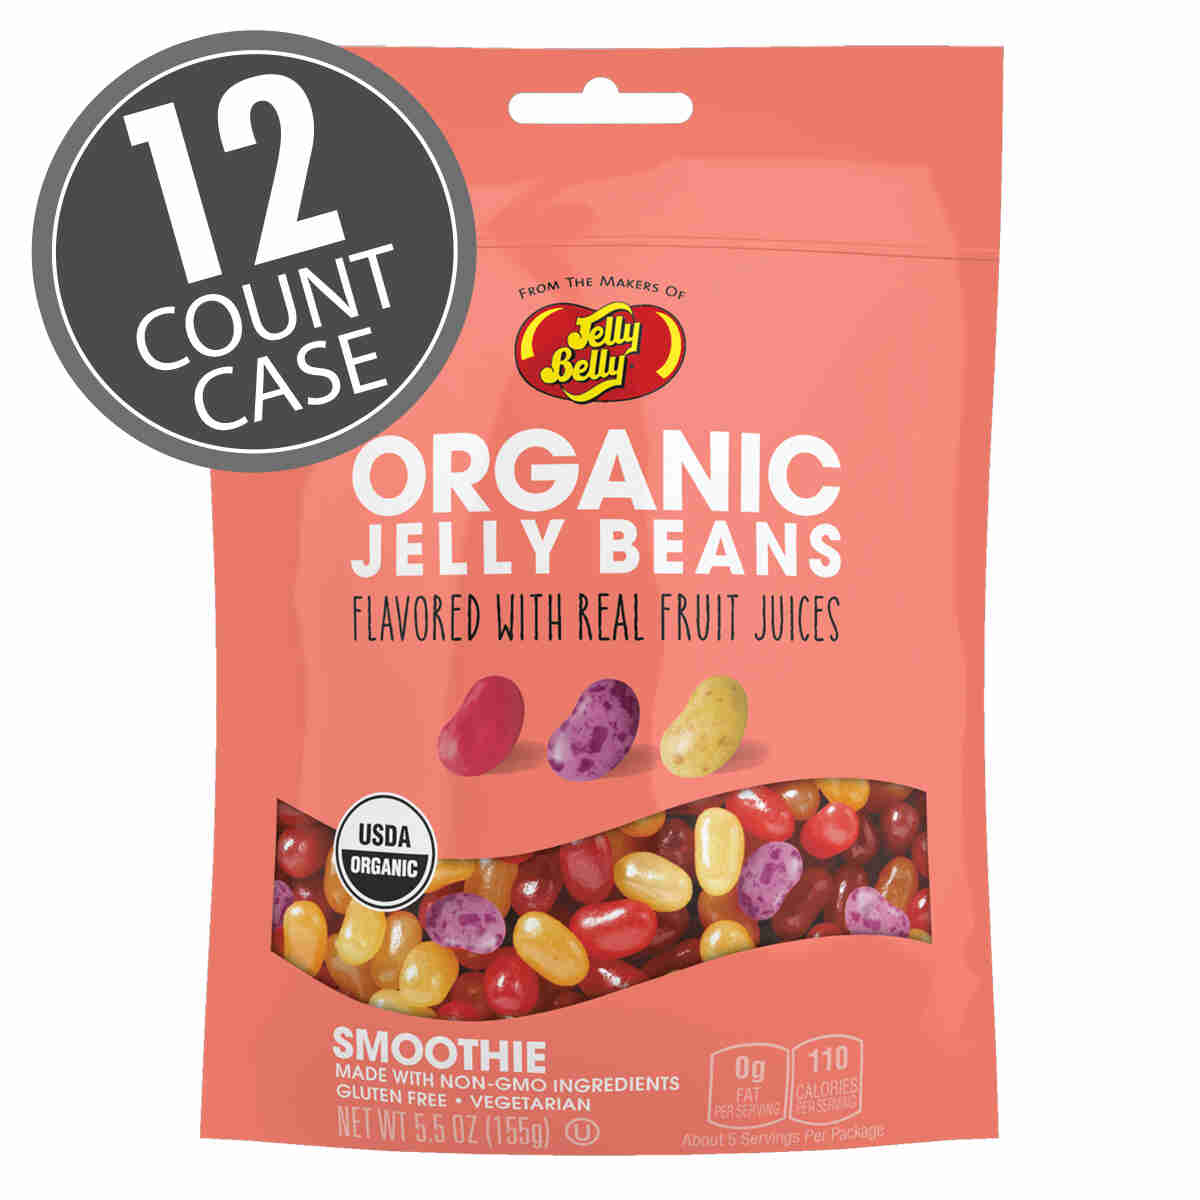 Organic Smoothie Jelly Beans from the makers of Jelly Belly - 5.5 oz bag, 12-Count Case